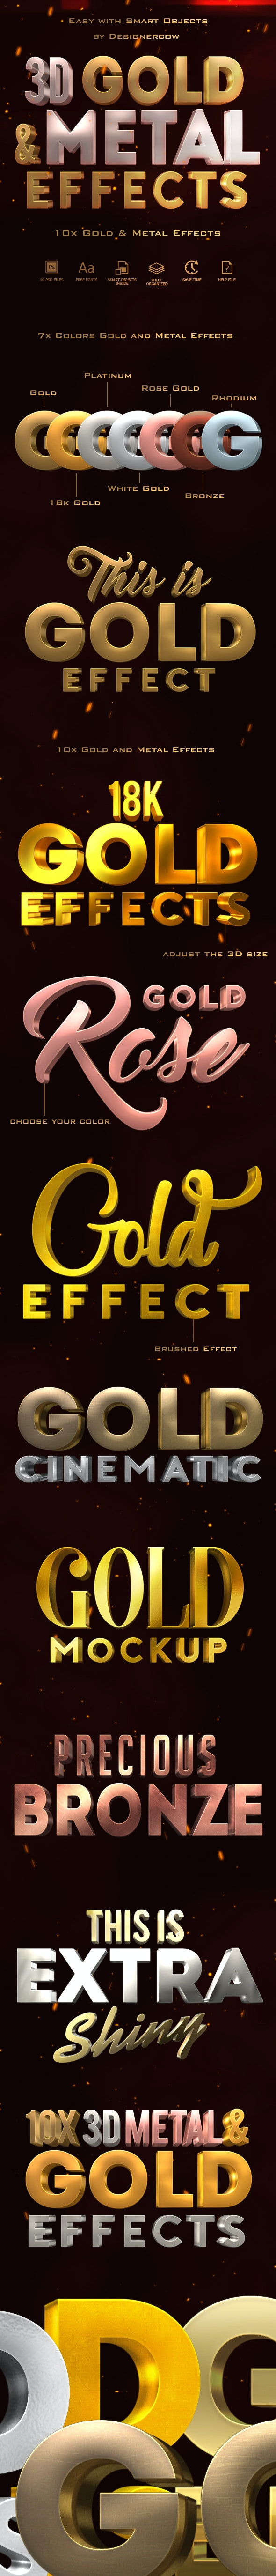 3D Gold and Metal Effects - Text Effects Actions